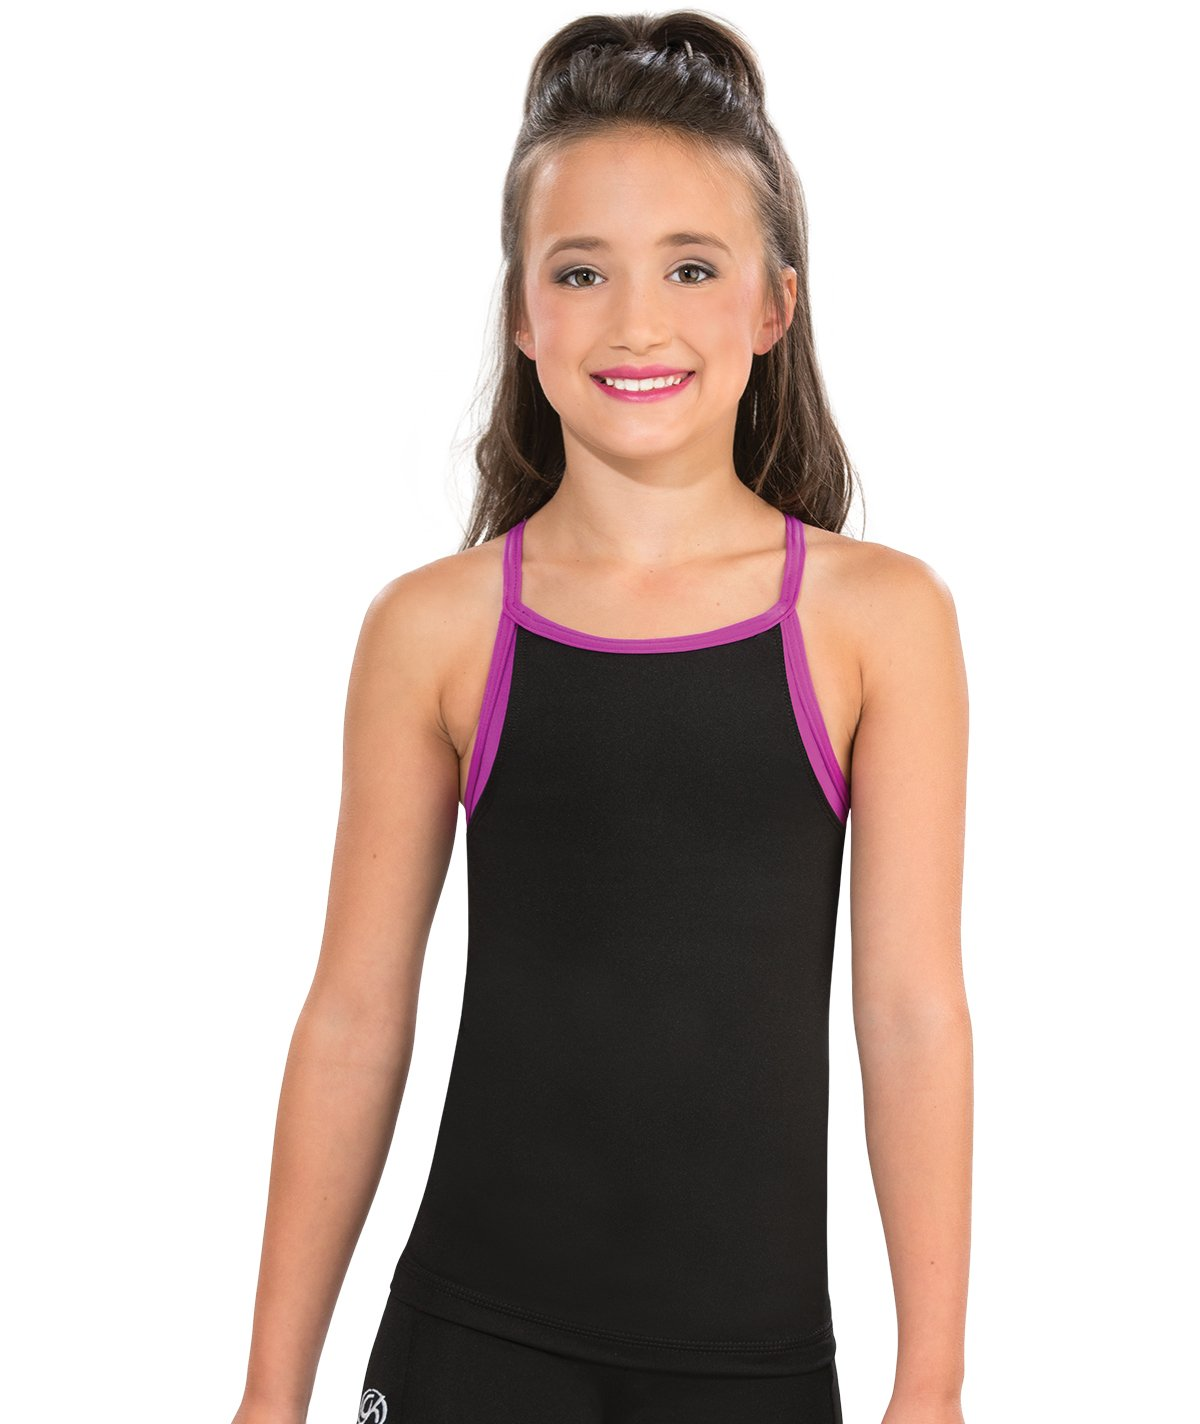 GK All Star Faux Layered Cheer Long Top